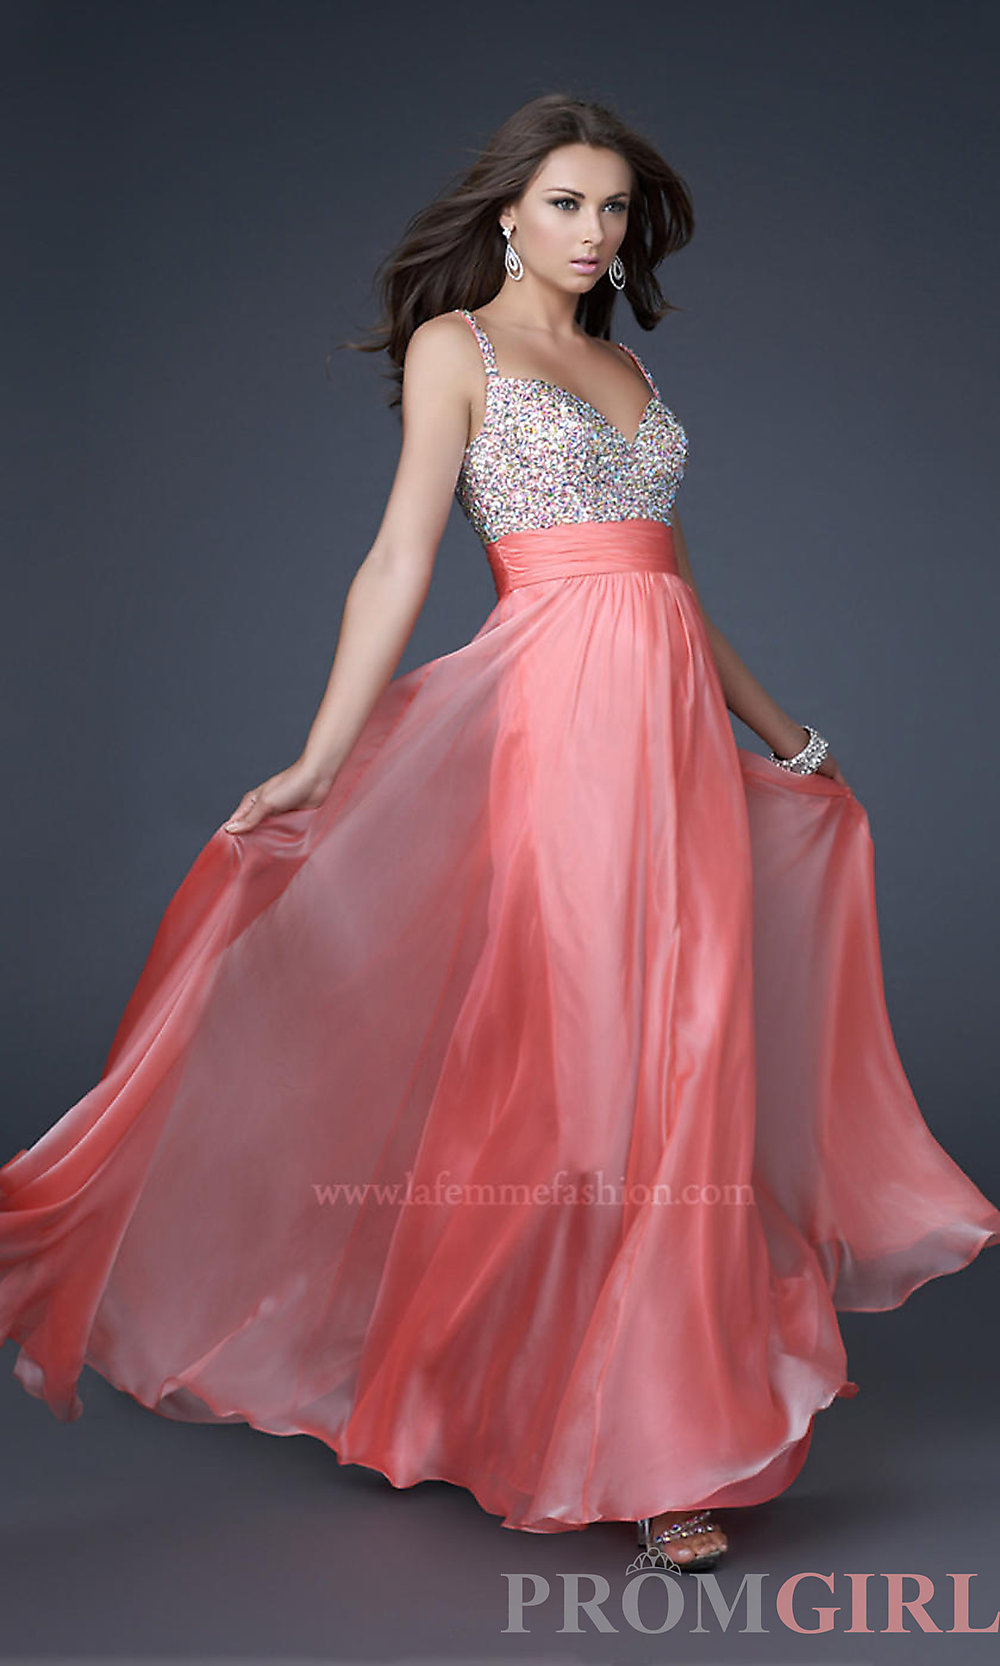 Latest Fancy Gowns, Prom and Cocktail dresses for Weddings and Parties 2014-2015 (8)